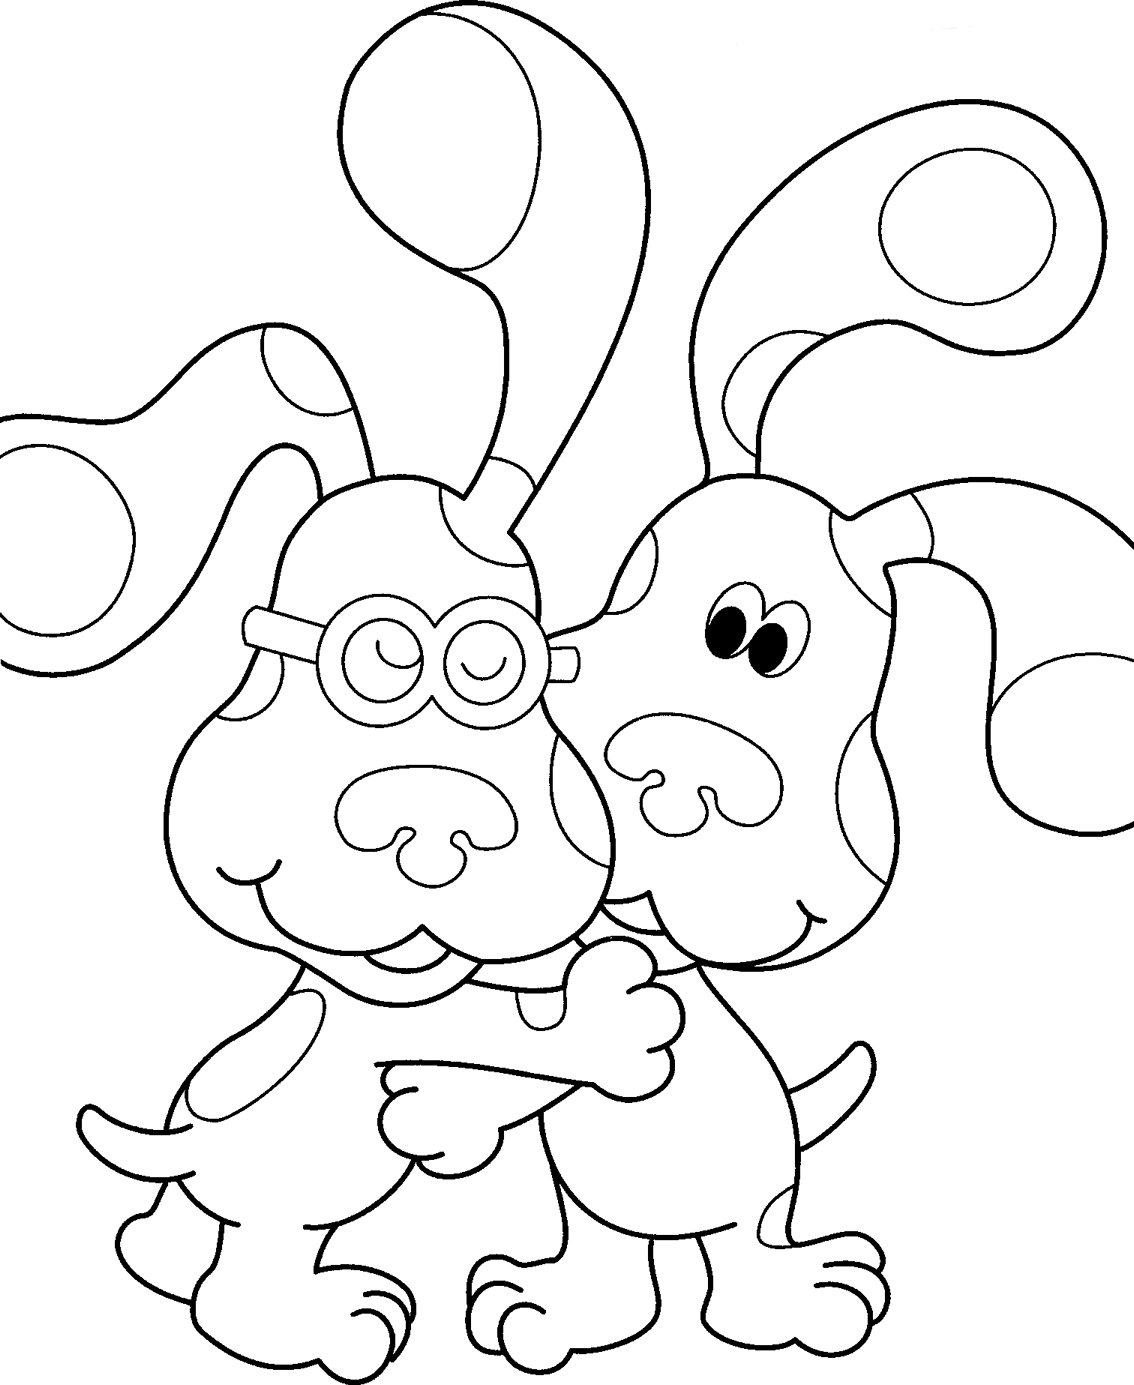 foot print coloring pages - photo#10